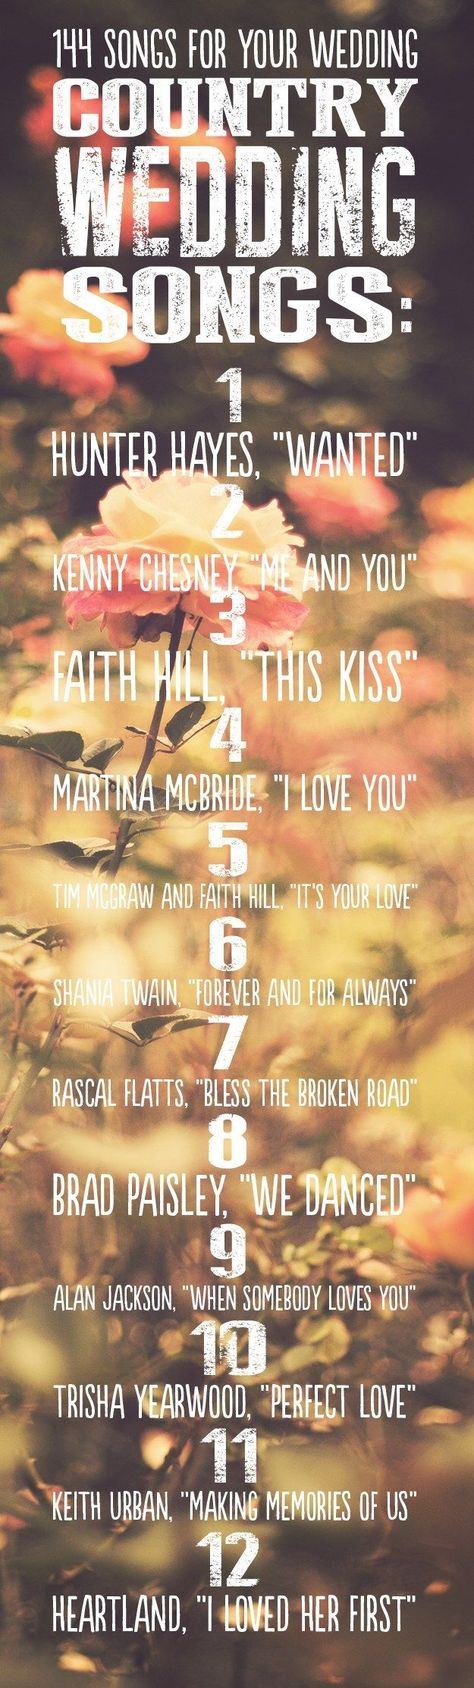 144 Swoon-Worthy Songs For Every Part Of Your Wedding Day- Don't forget personalized napkins for your big day! #country #wedding